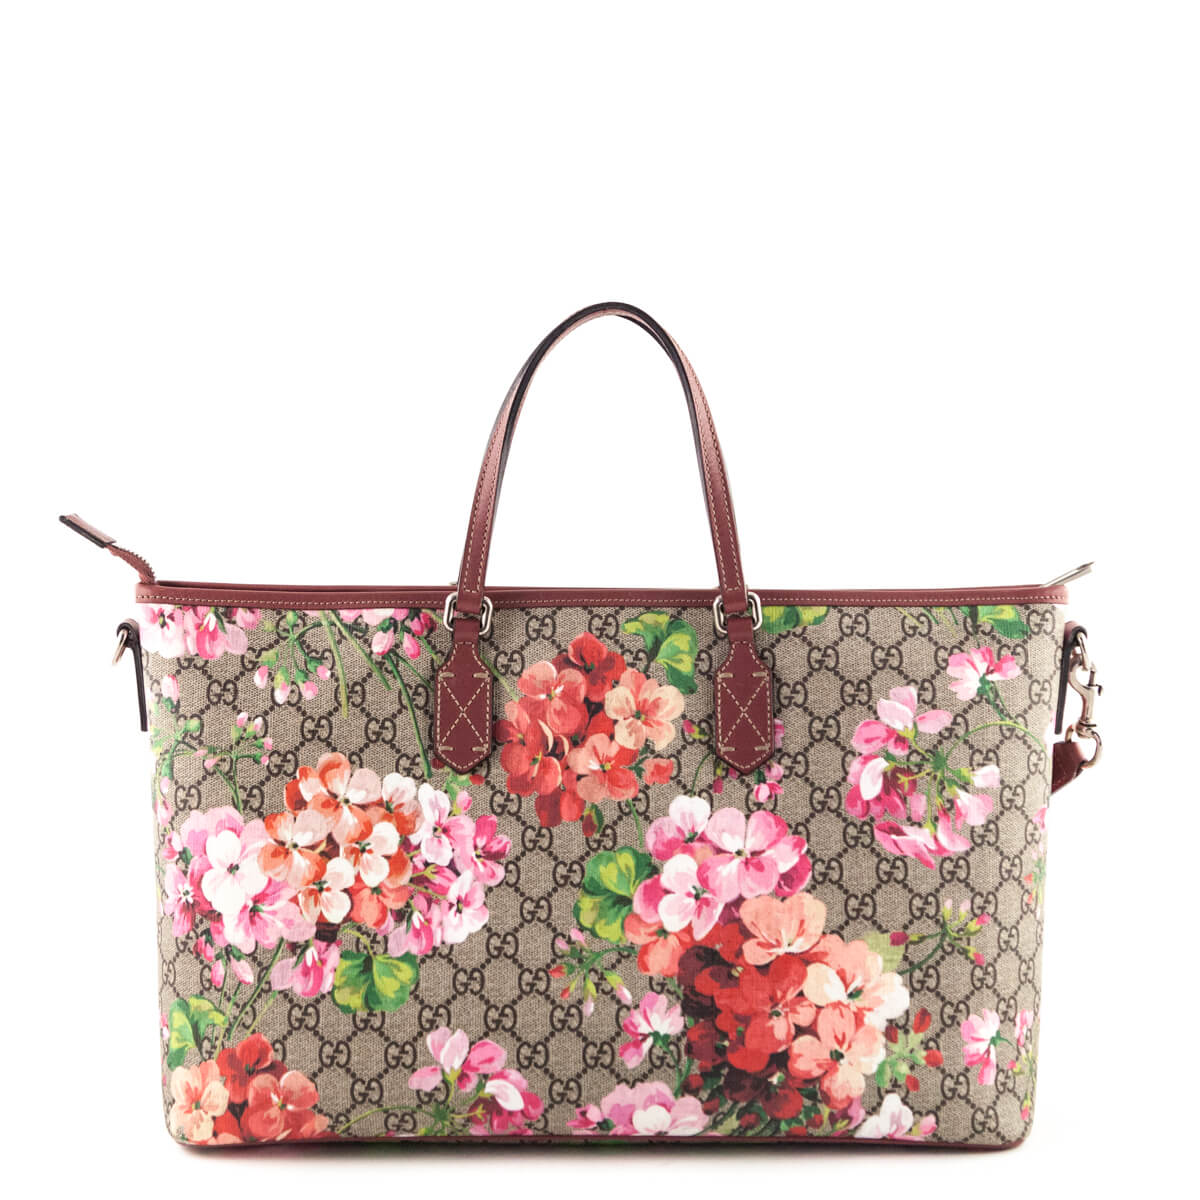 ... Gucci Antique Rose Monogram Soft GG Blooms Tote - LOVE that BAG -  Preowned Authentic Designer ... 6cfae9e773942